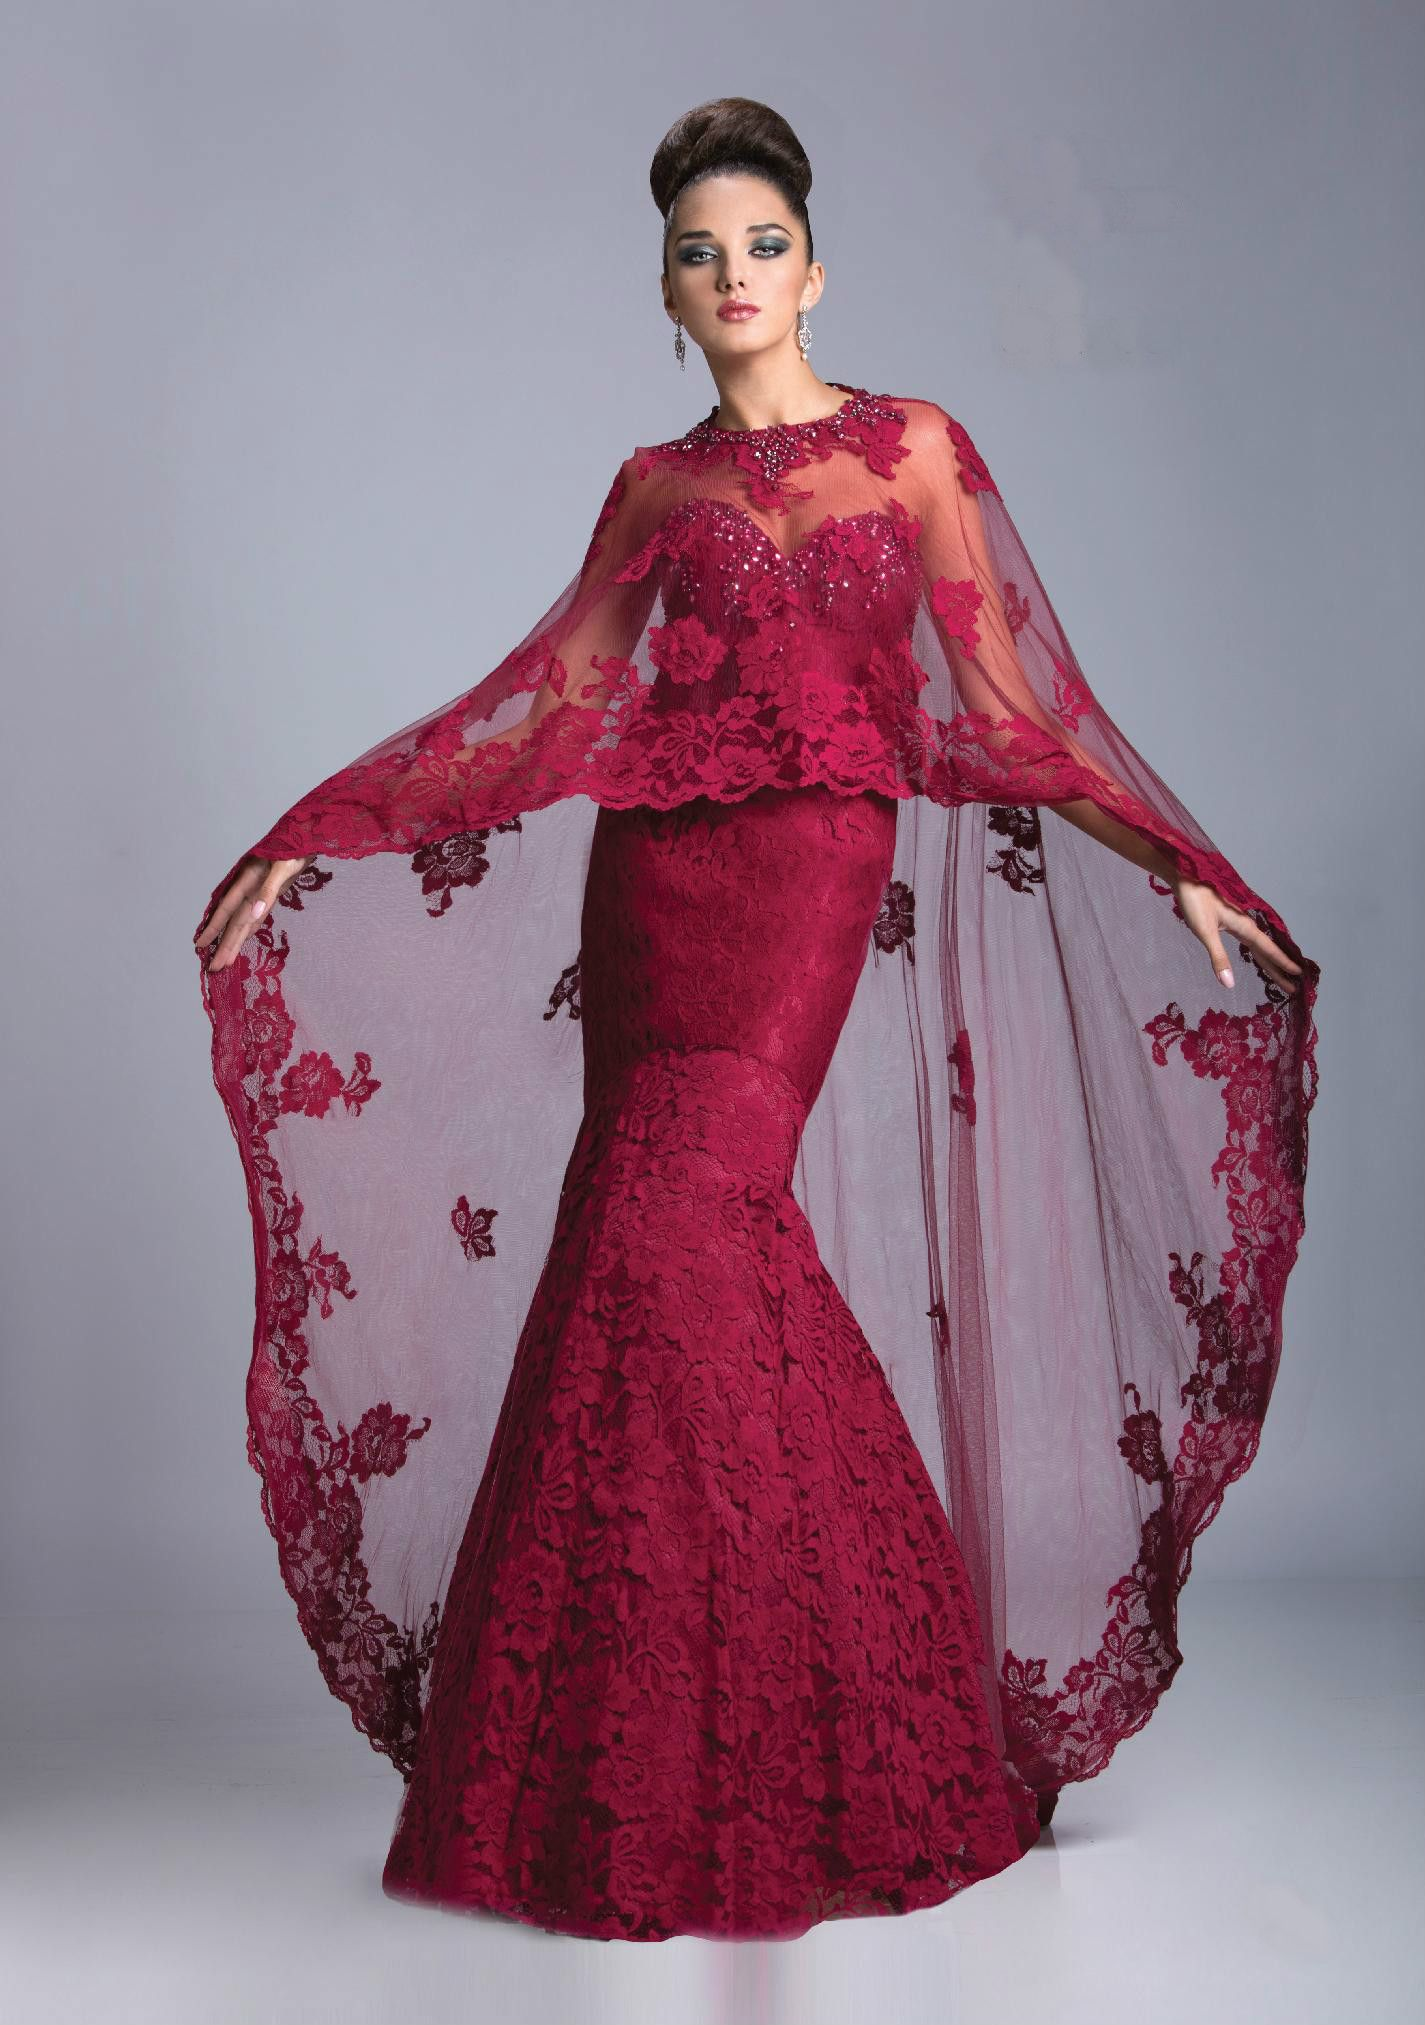 Cape With Embroidered Flower Pattern Adds Dramatic Flair To Strapless Gown Dress Has Sweetheart Neckline With E Gowns Designer Evening Dresses Evening Dresses